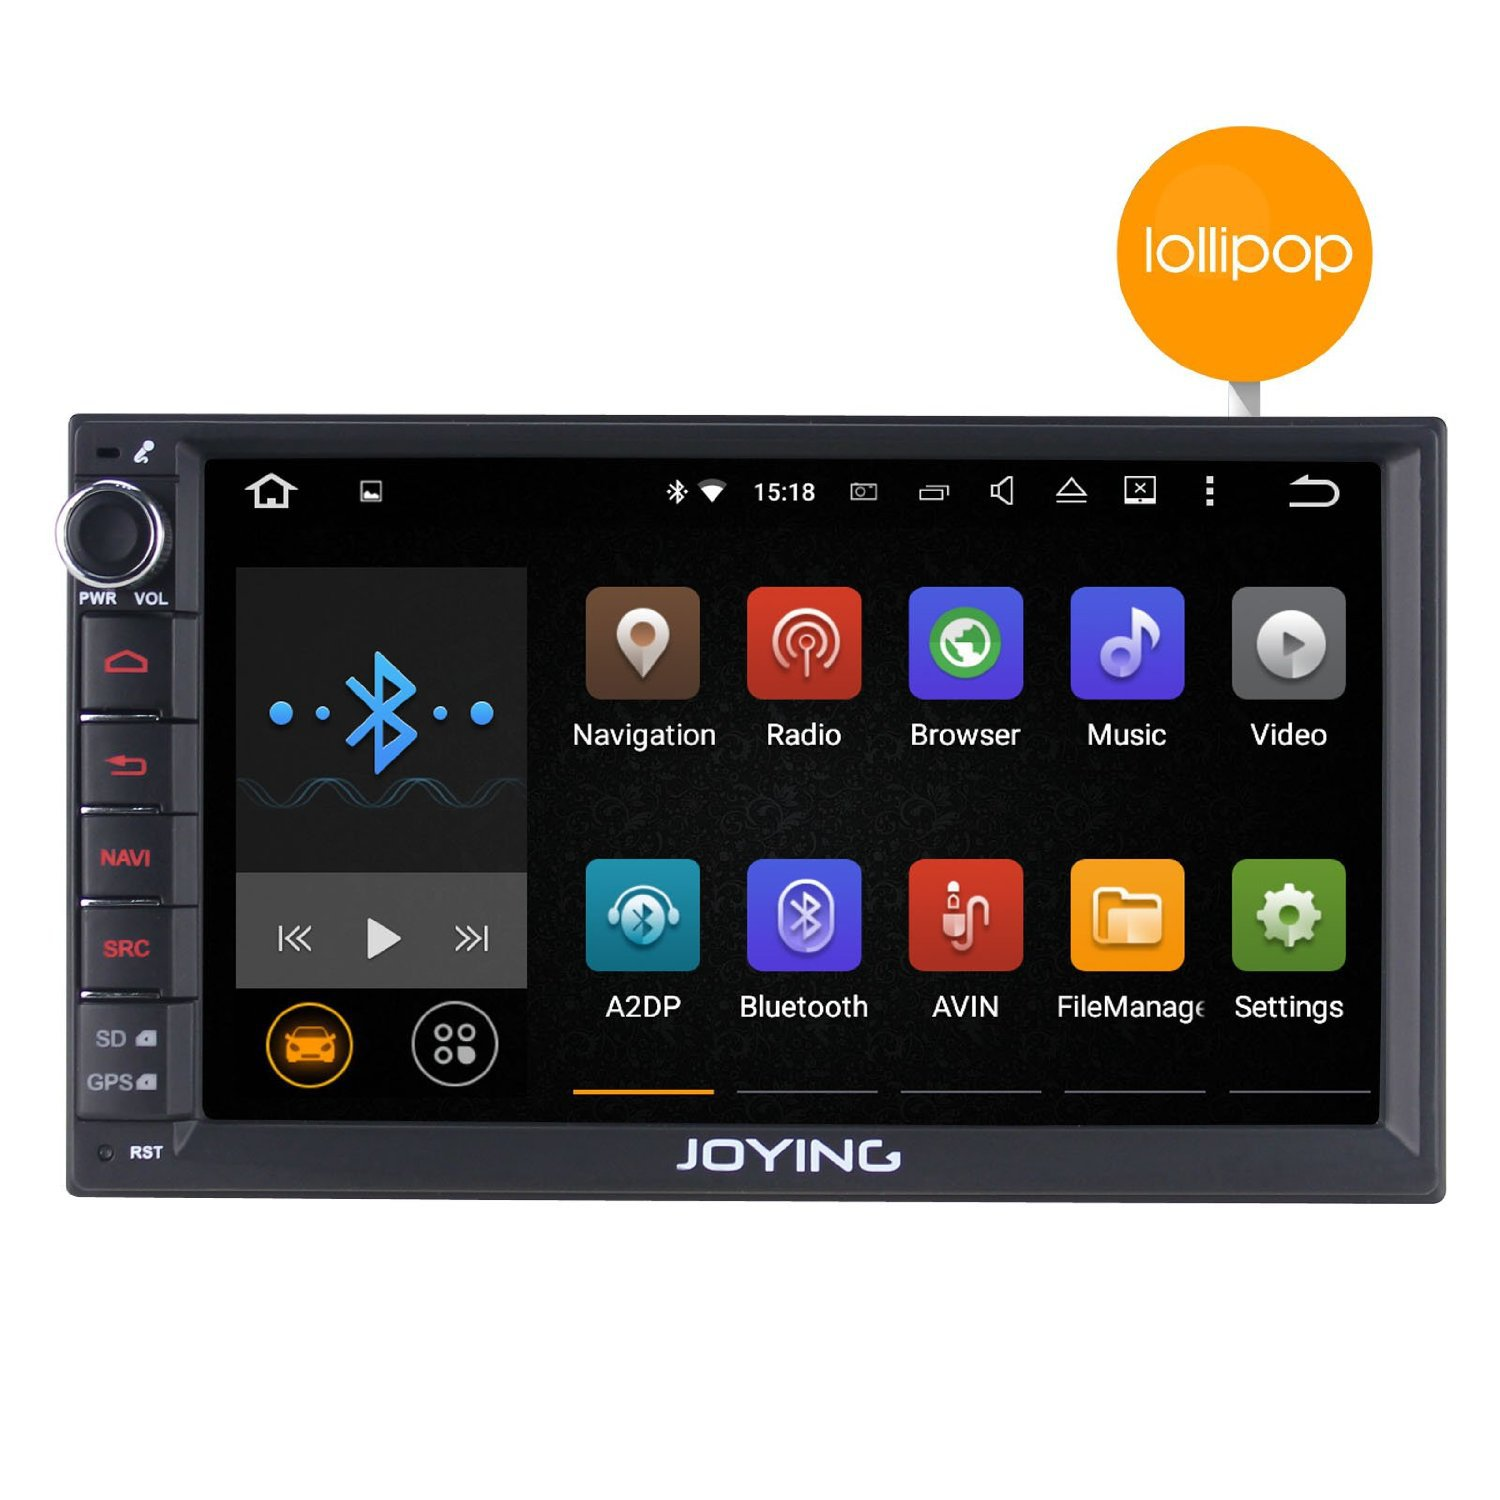 "JOYING 7"" Android 5.1 Lollipop Quad Core Double 2 Din Car Stereo Touch Screen"